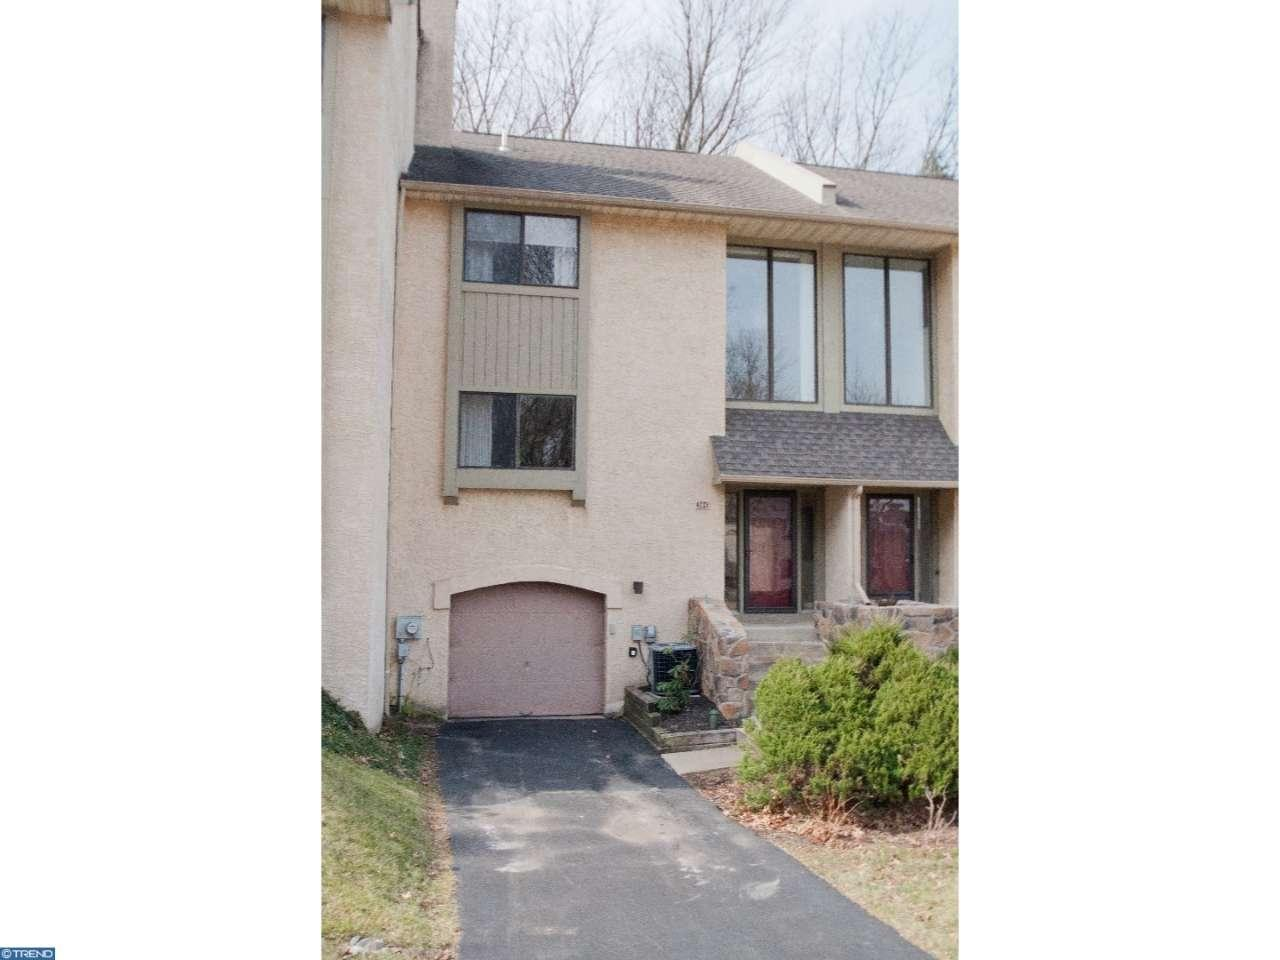 384 Lynetree Dr, West Chester, PA 19380